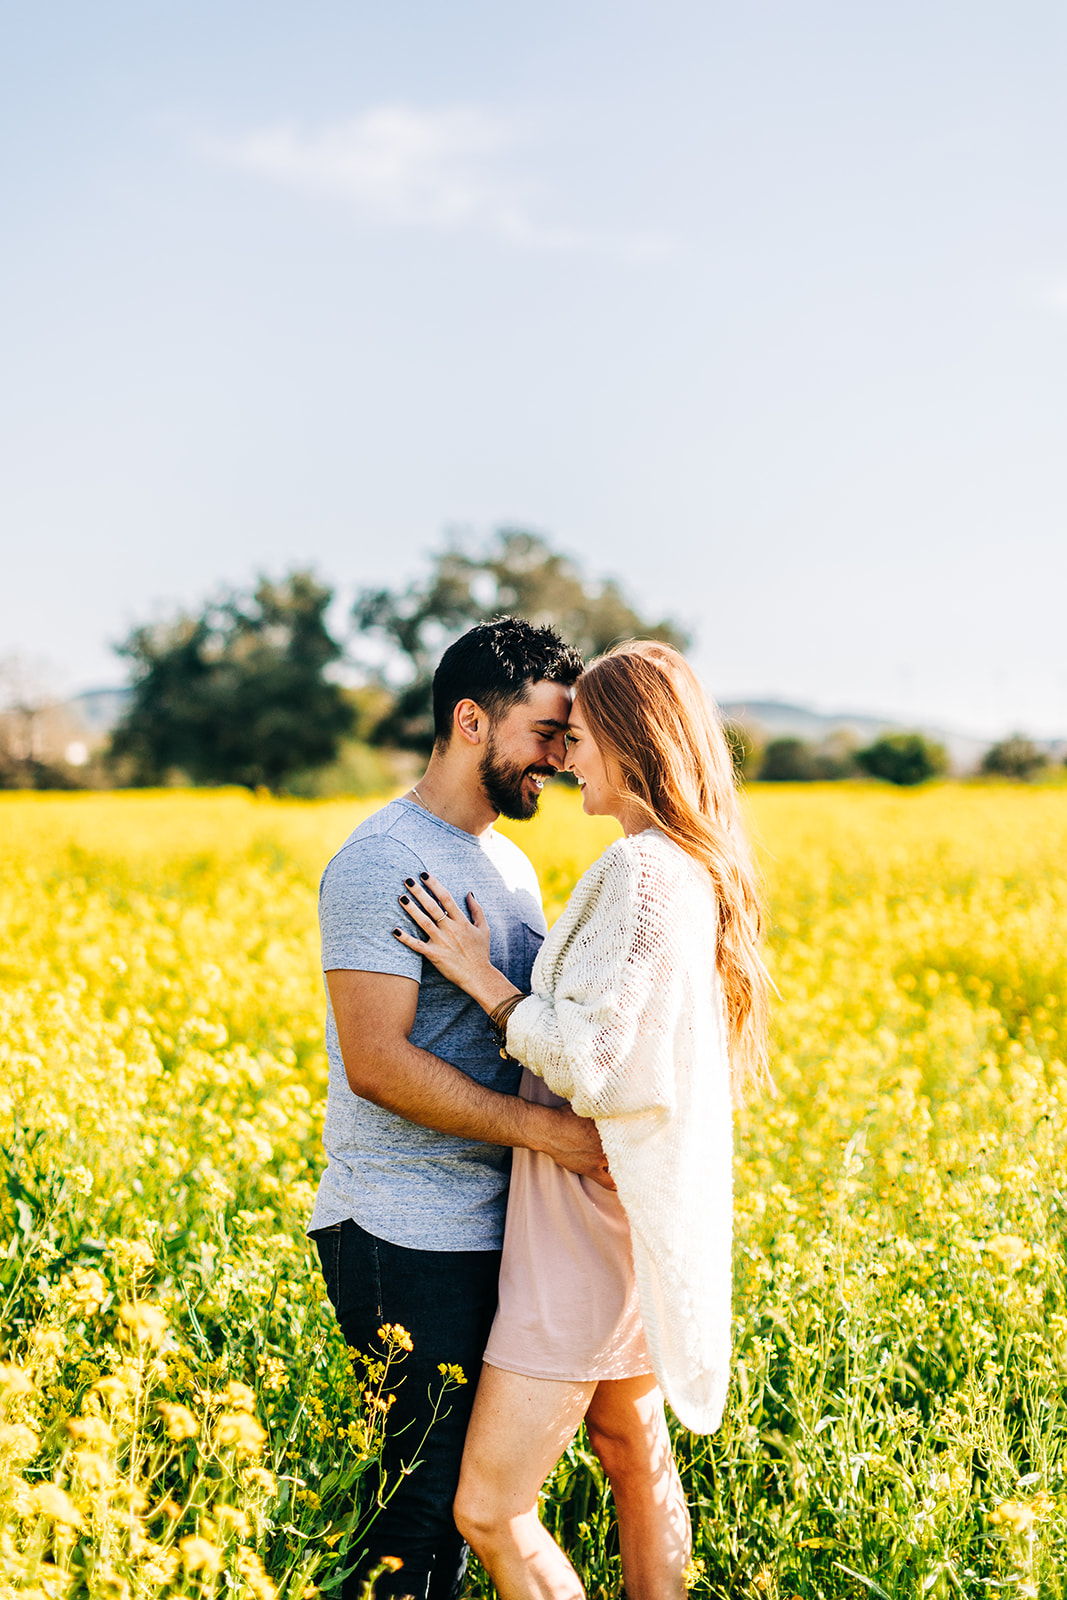 Katie-Yovin_Richard_Superbloom-Engagement-Photos_Clarisse-Rae_Southern-California-Wedding-Photographer-Orange-County-Engagement-Photos-1